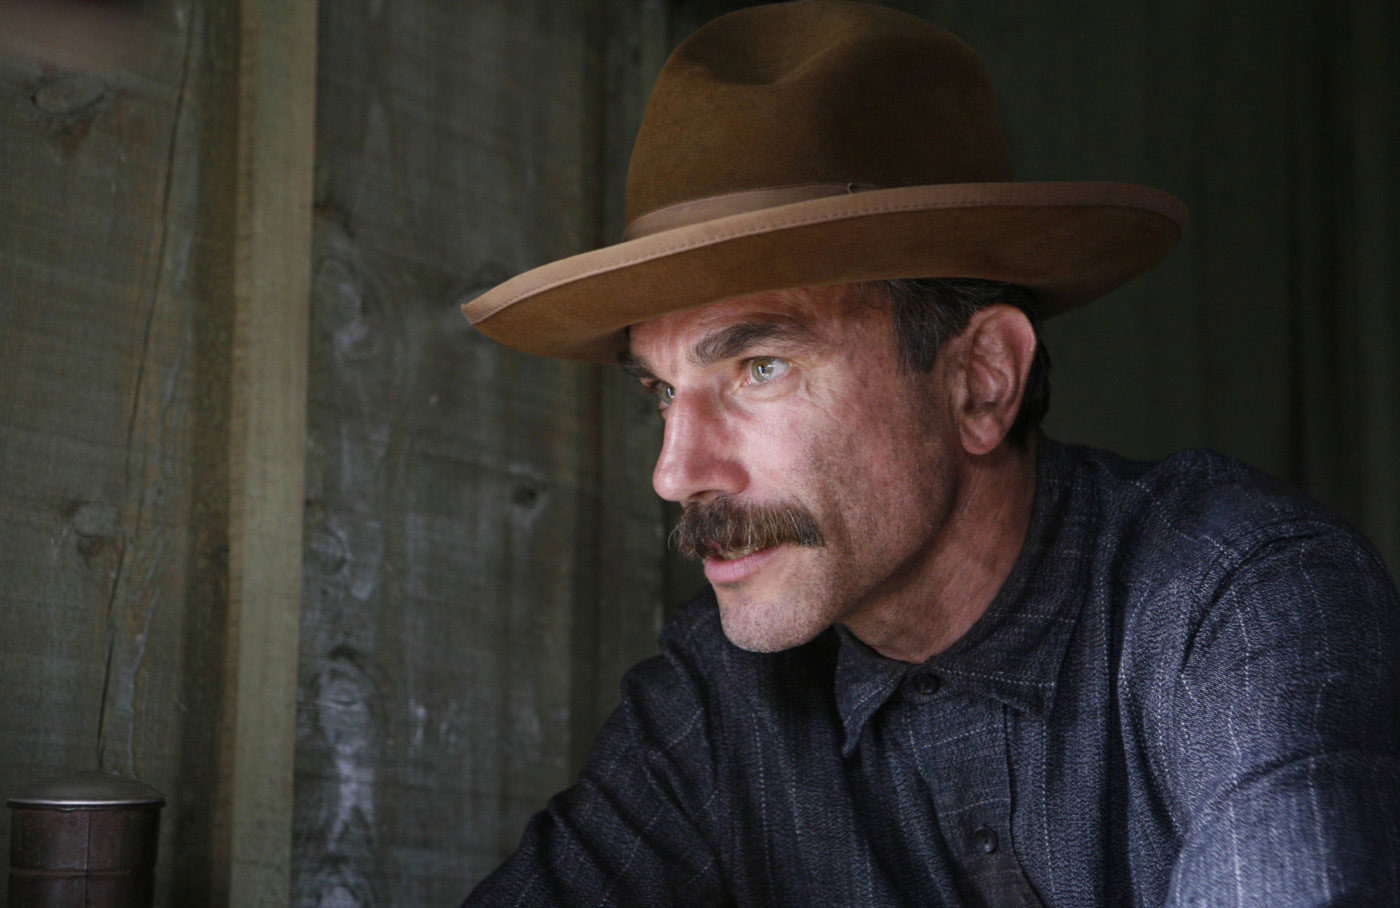 Daniel Day-Lewis in the 2007 film There Will Be Blood